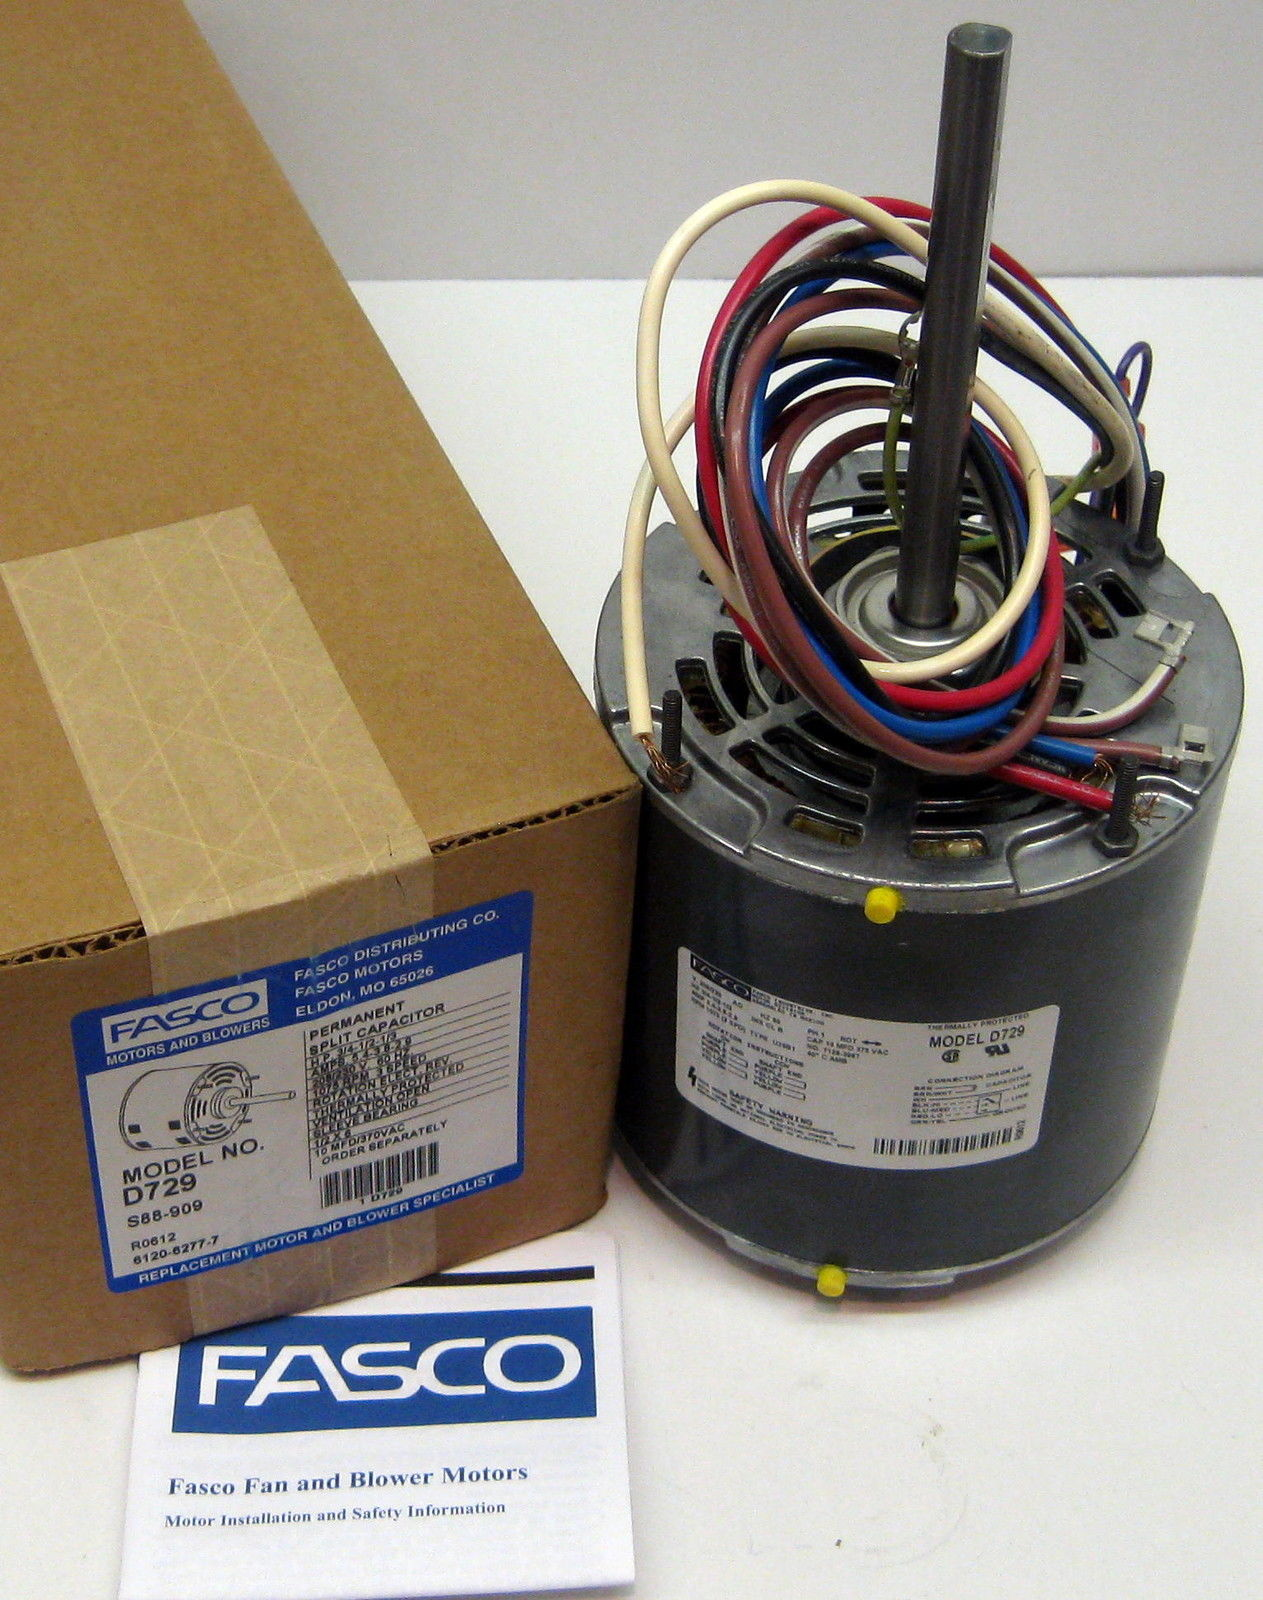 D729-10 Fasco 3/4 HP 1075 rpm 208-230 v 3 Speed Furnace ...